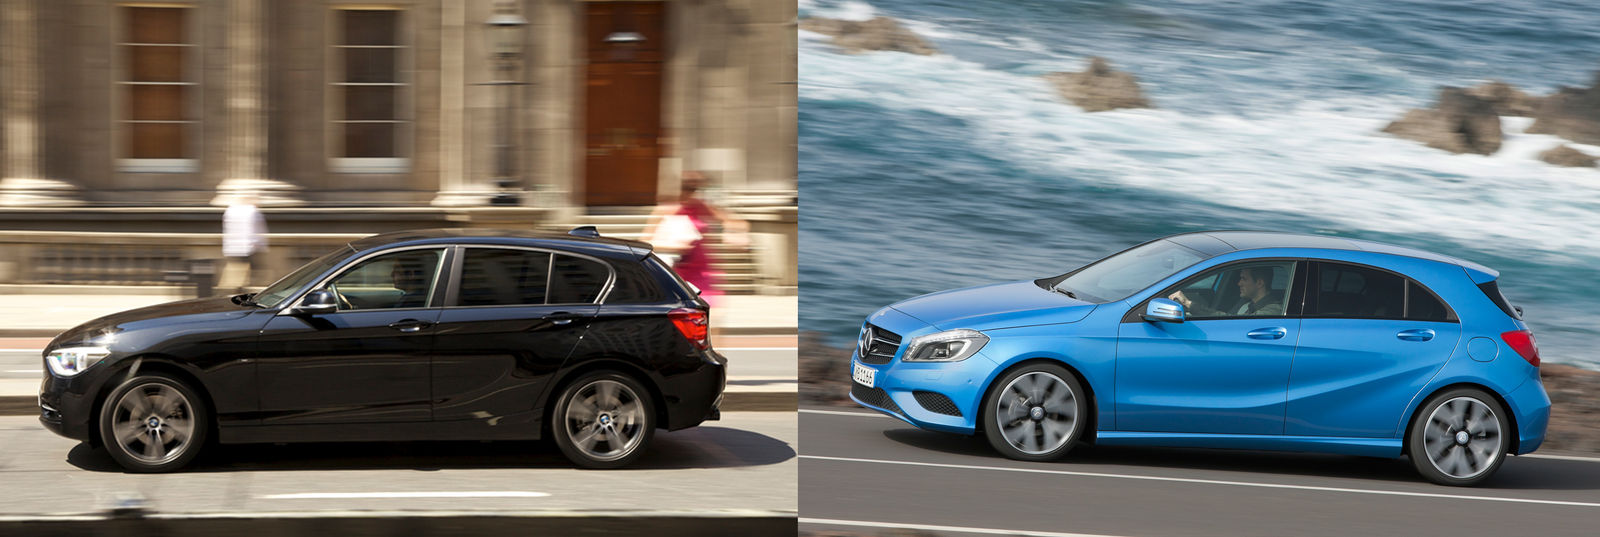 mercedes a class vs bmw 1 series head to head uk comparison carwow. Black Bedroom Furniture Sets. Home Design Ideas